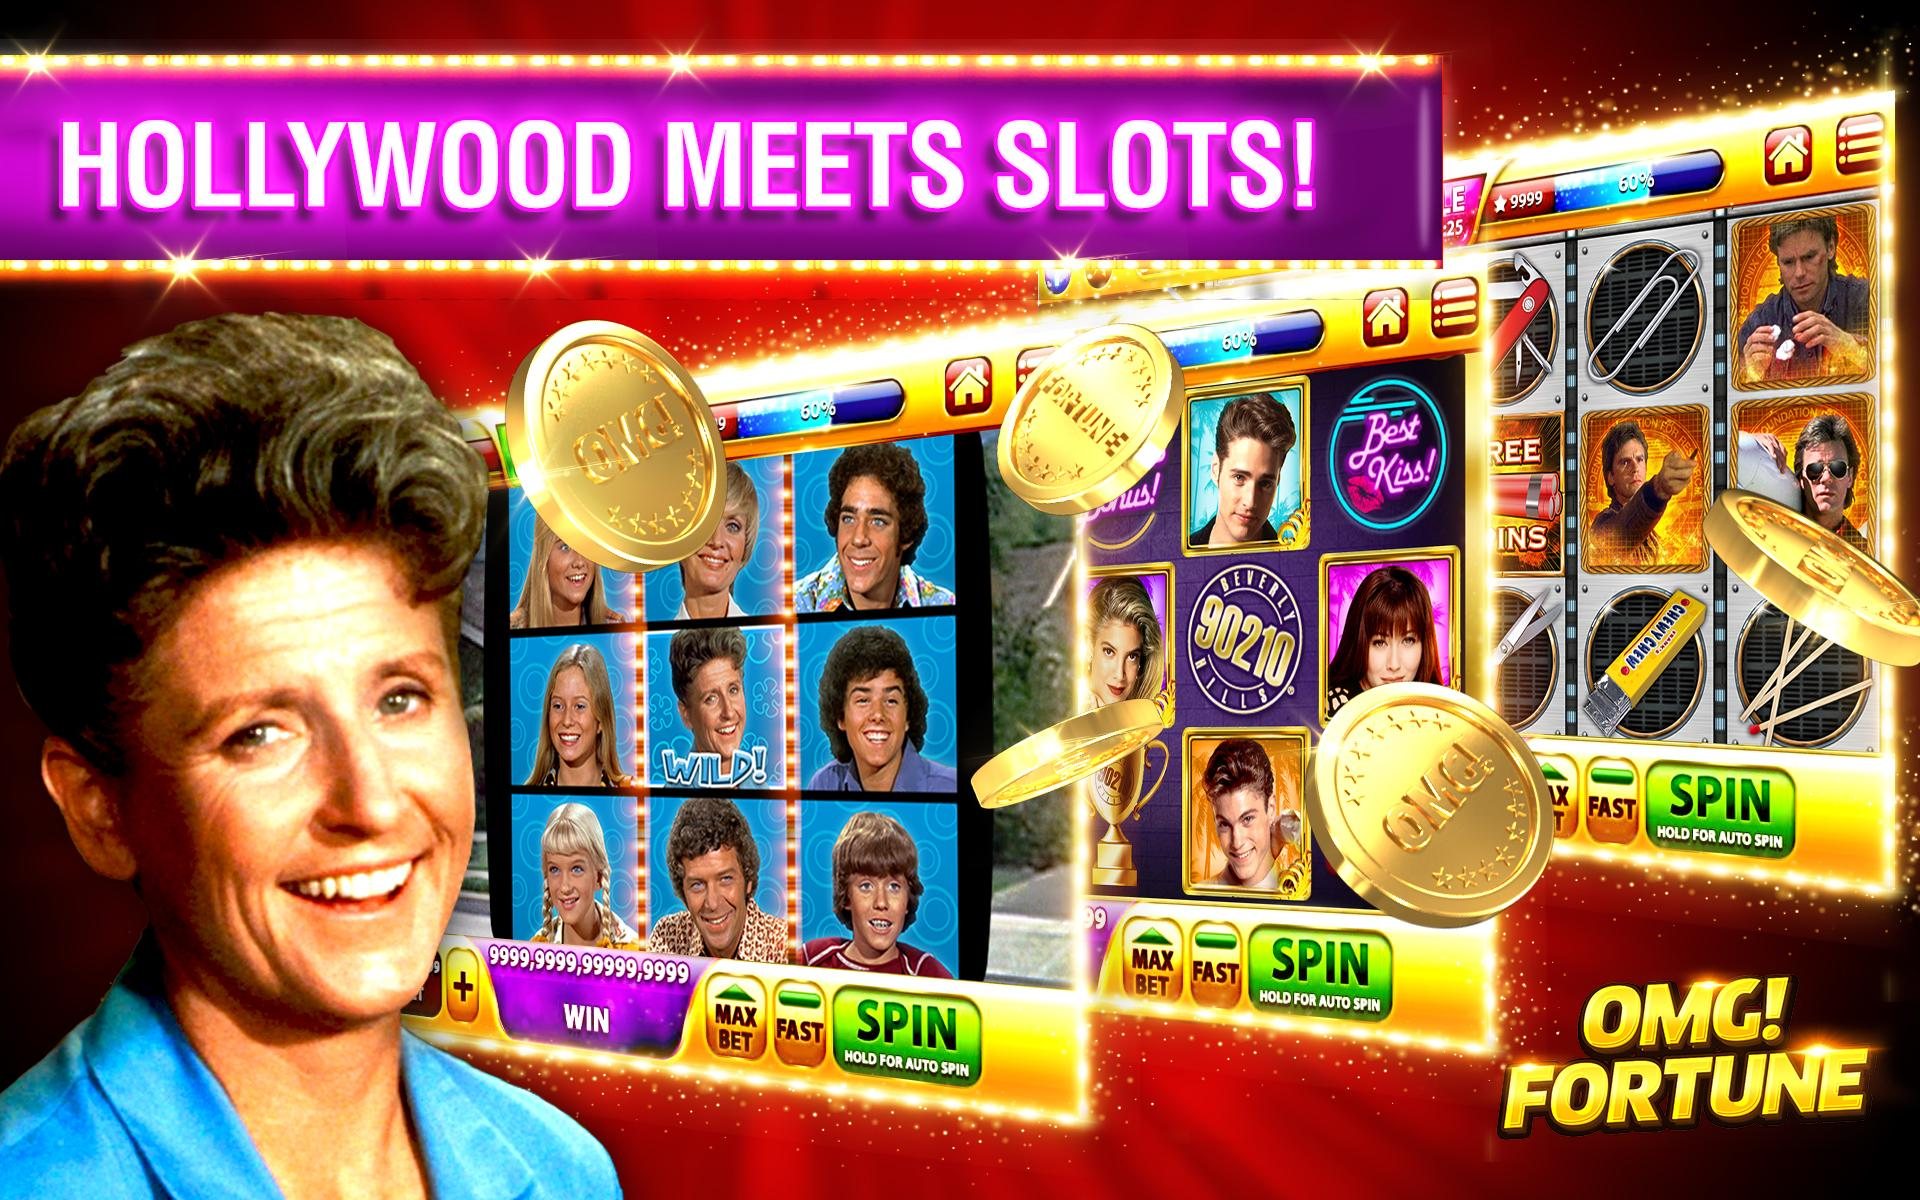 OMG! Fortune Free Slots Casino screenshot #13